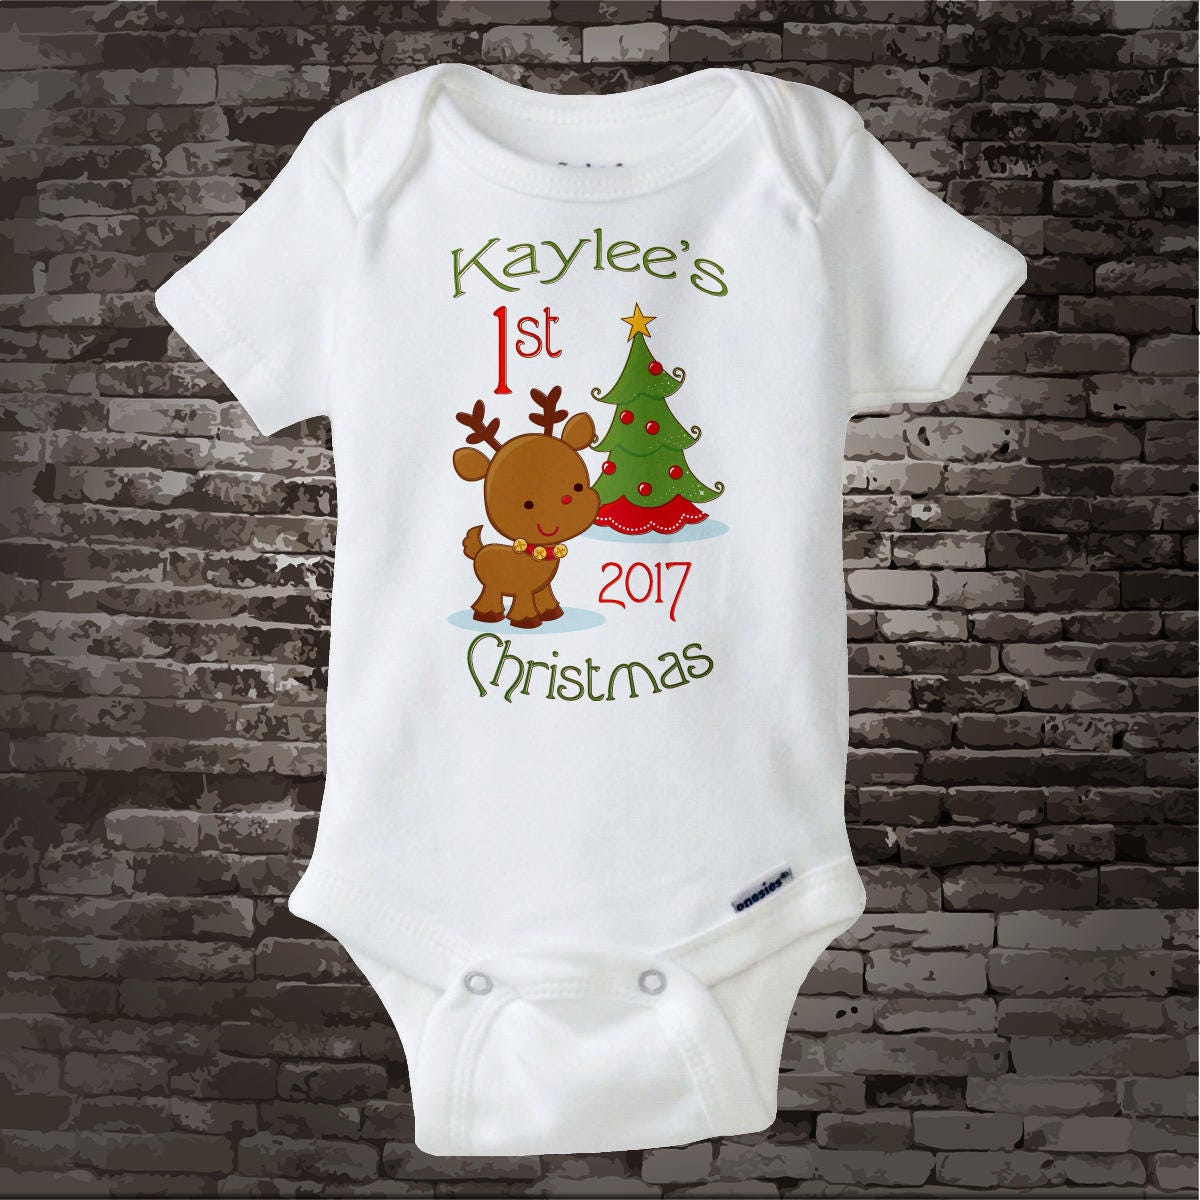 38728264749f ... My First Christmas Onesie, Personalized 1st Christmas Shirt or Onesie,  Reindeer - Christmas Outfit 08222012d. gallery photo gallery photo ...